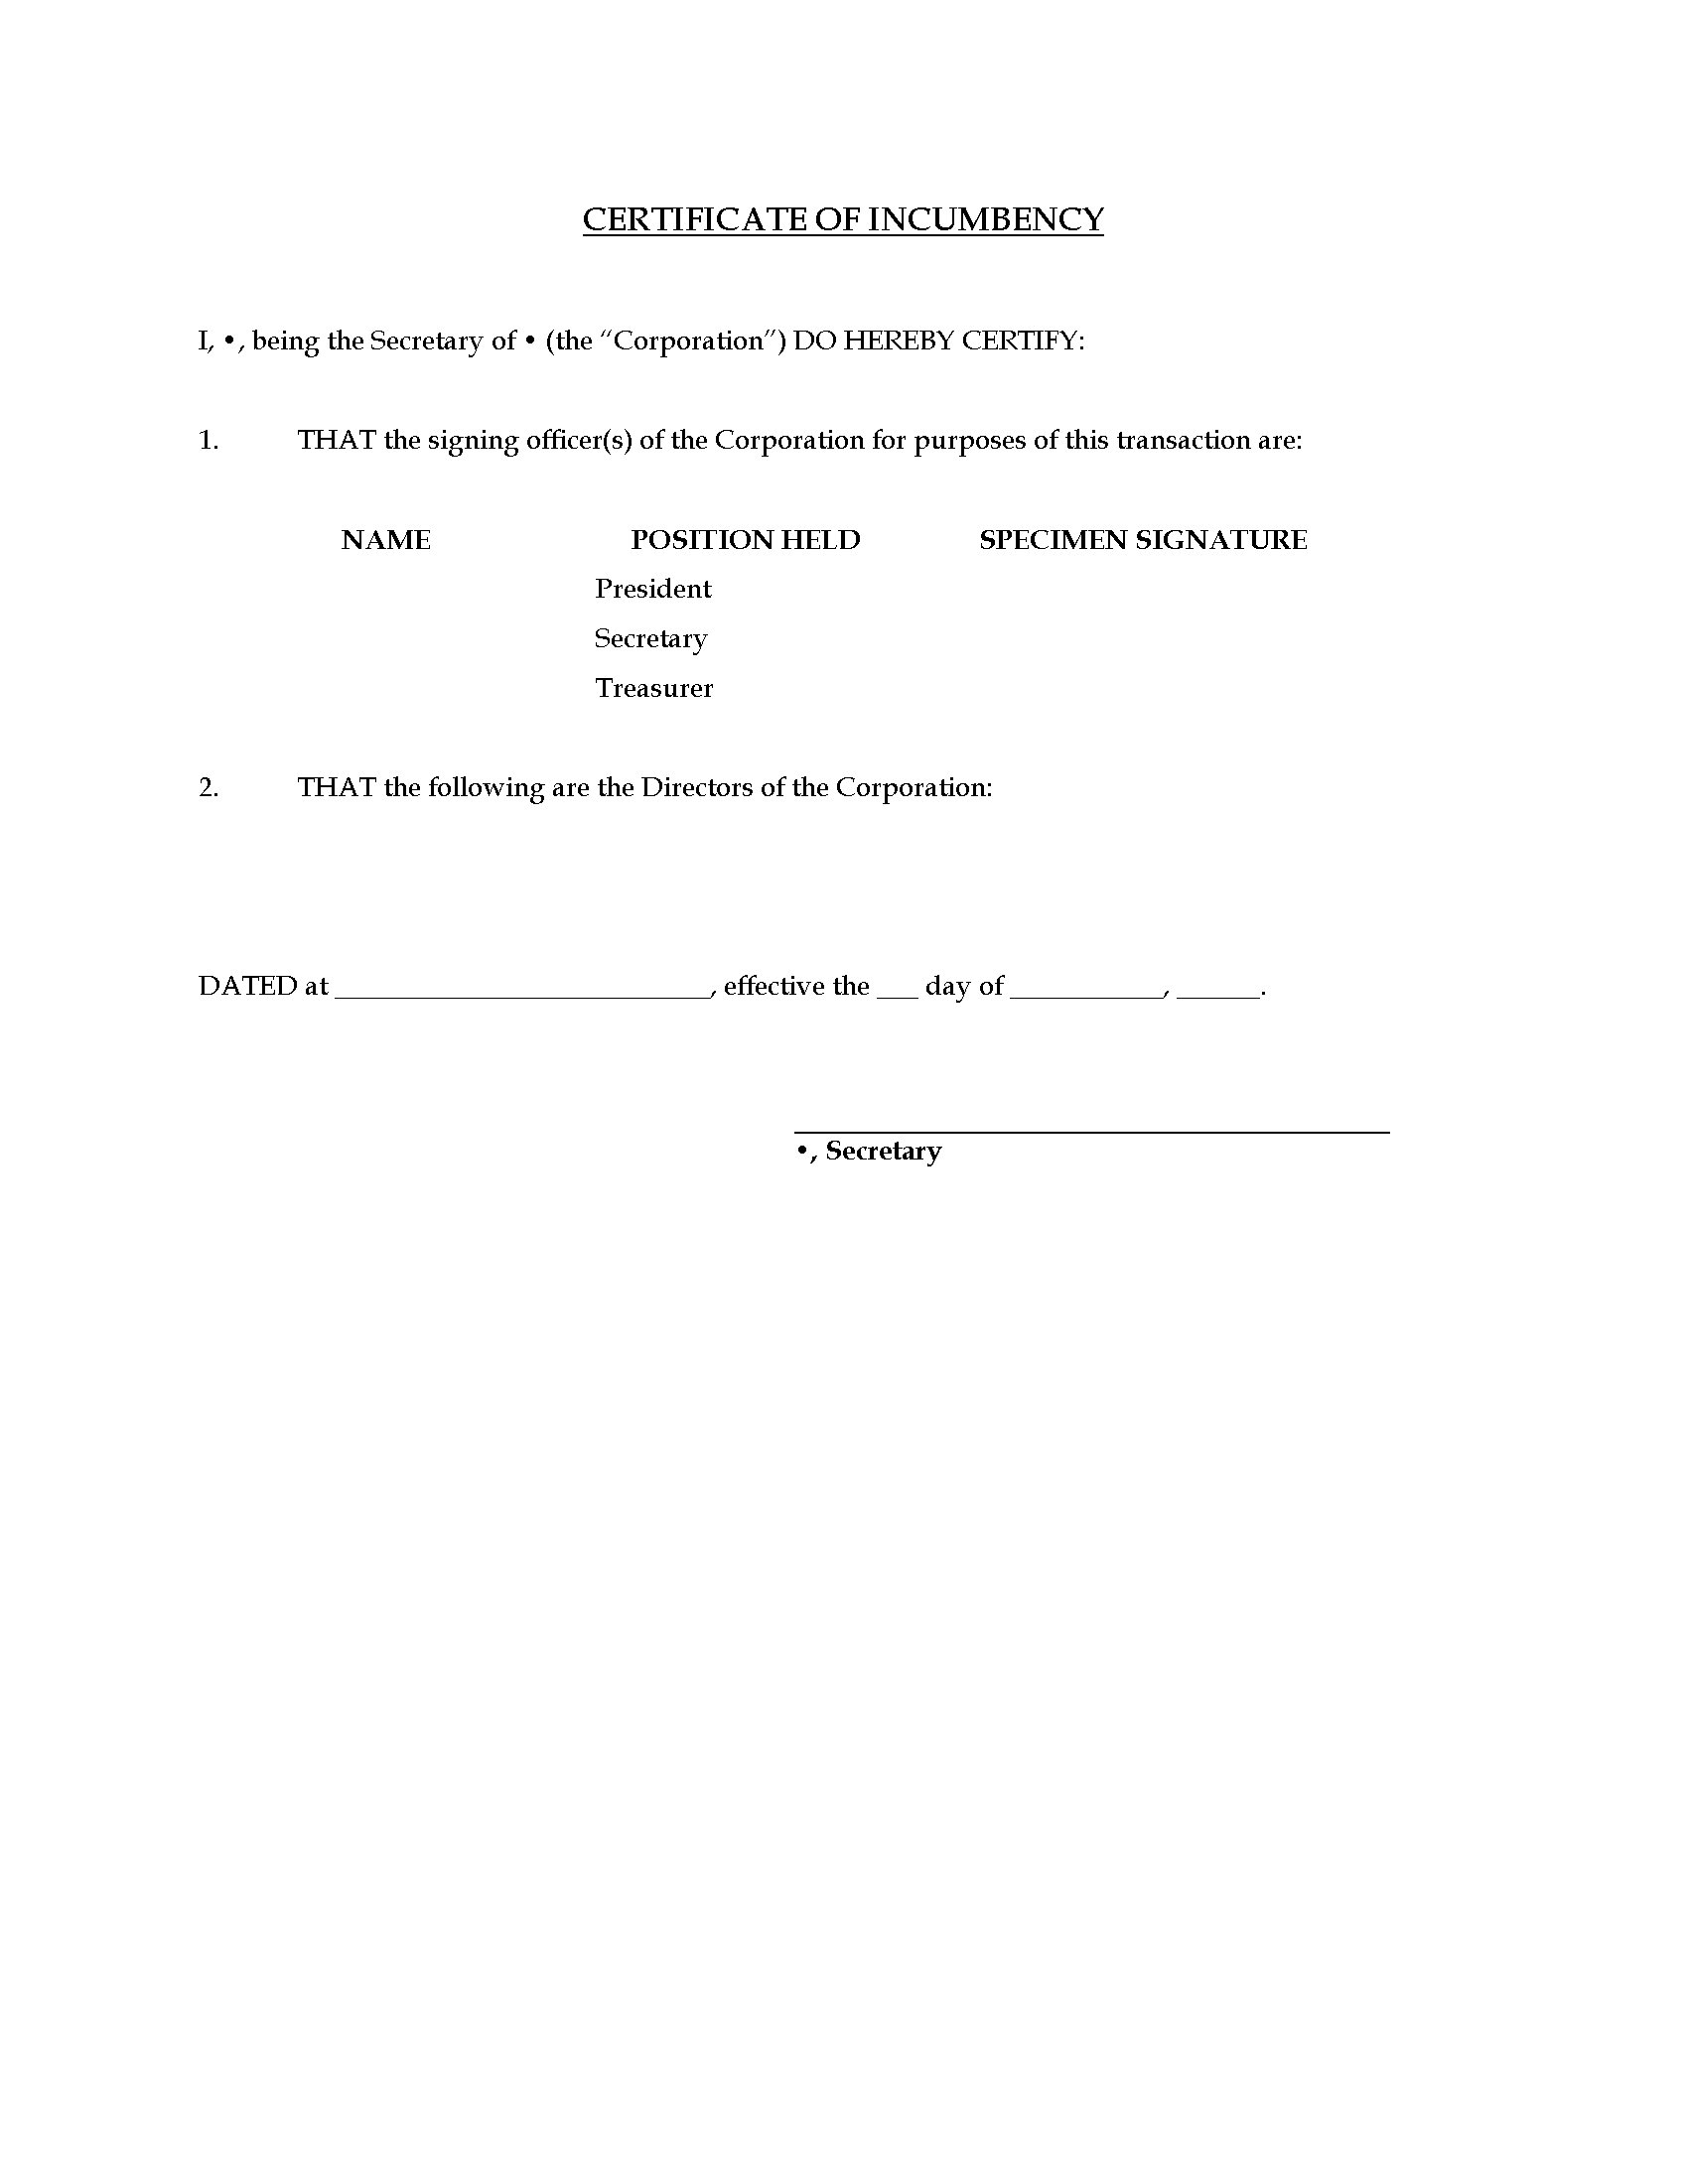 Certificate of Incumbency Template